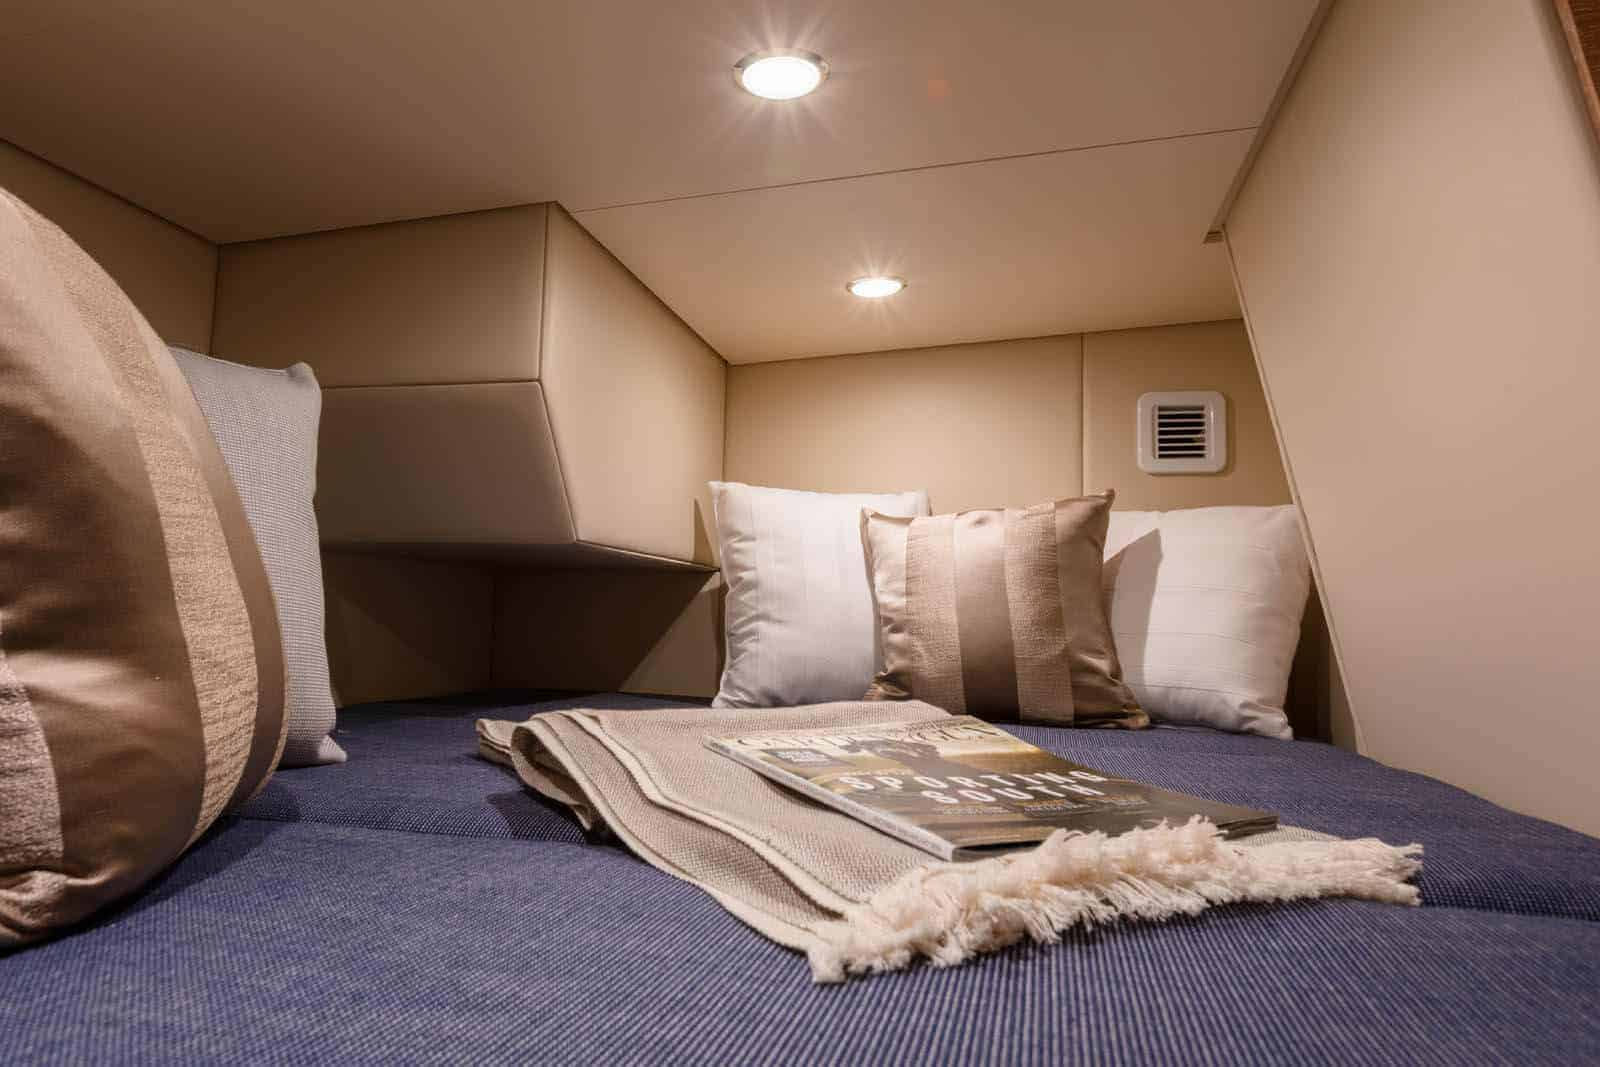 530LXF aft berth with pillows